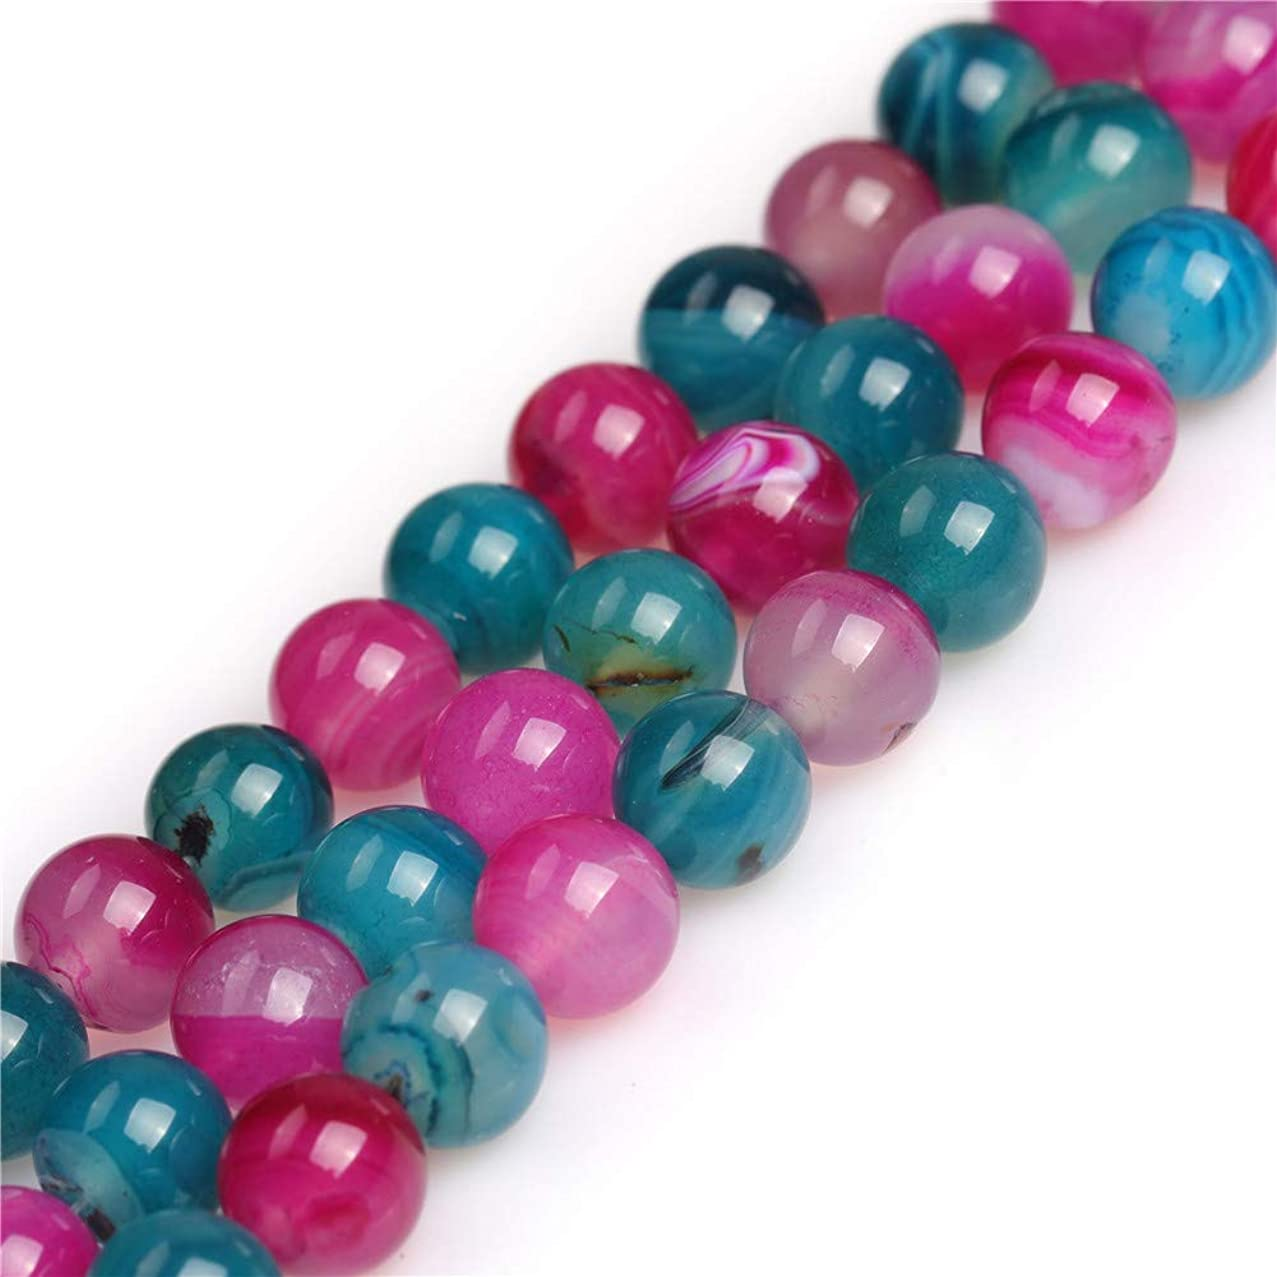 Mixed Color Agate Beads for Jewelry Making Semi Precious Gemstone 10mm Round Strand 15